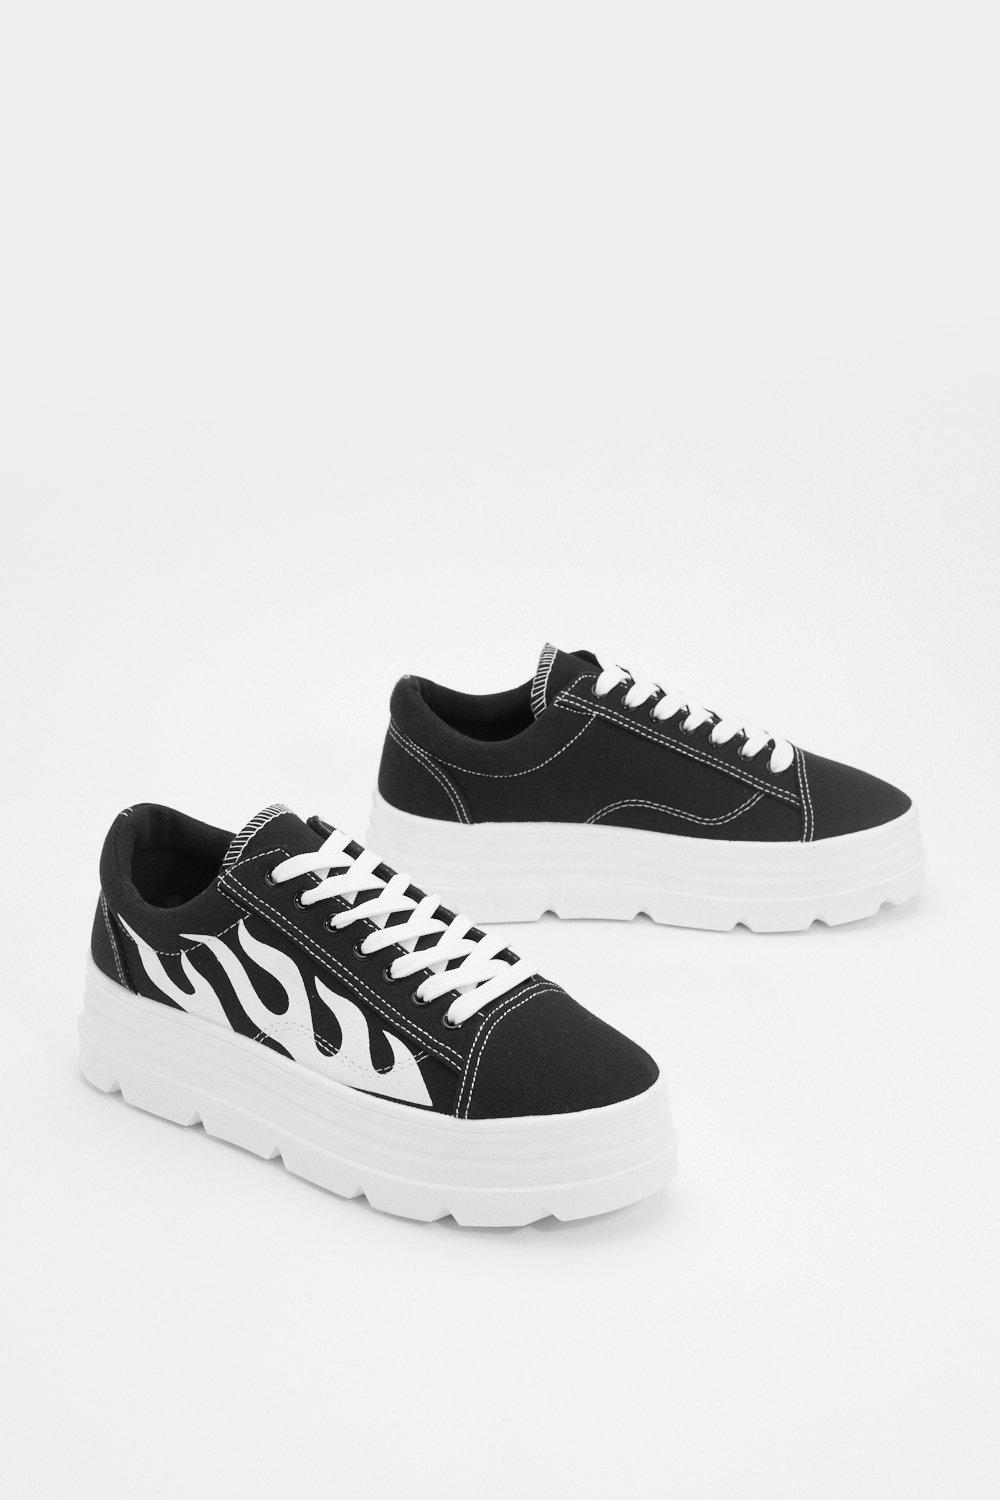 low priced 69615 2dd0f The Heat is On Platform Sneakers | Shop Clothes at Nasty Gal!